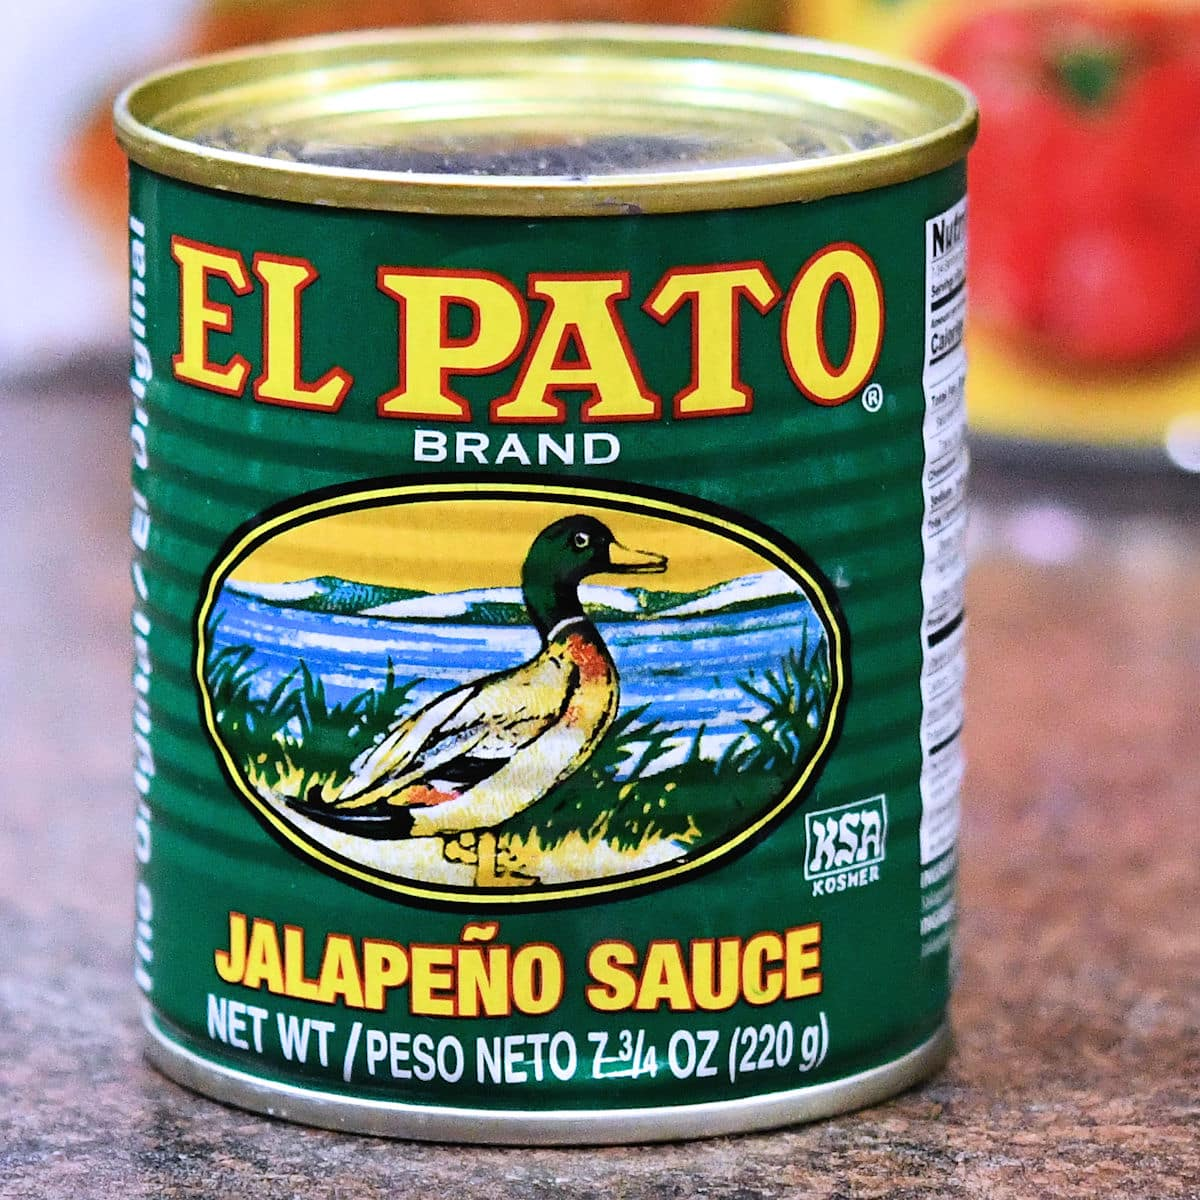 A can of El Pato Jalapeno Sauce on a countertop.